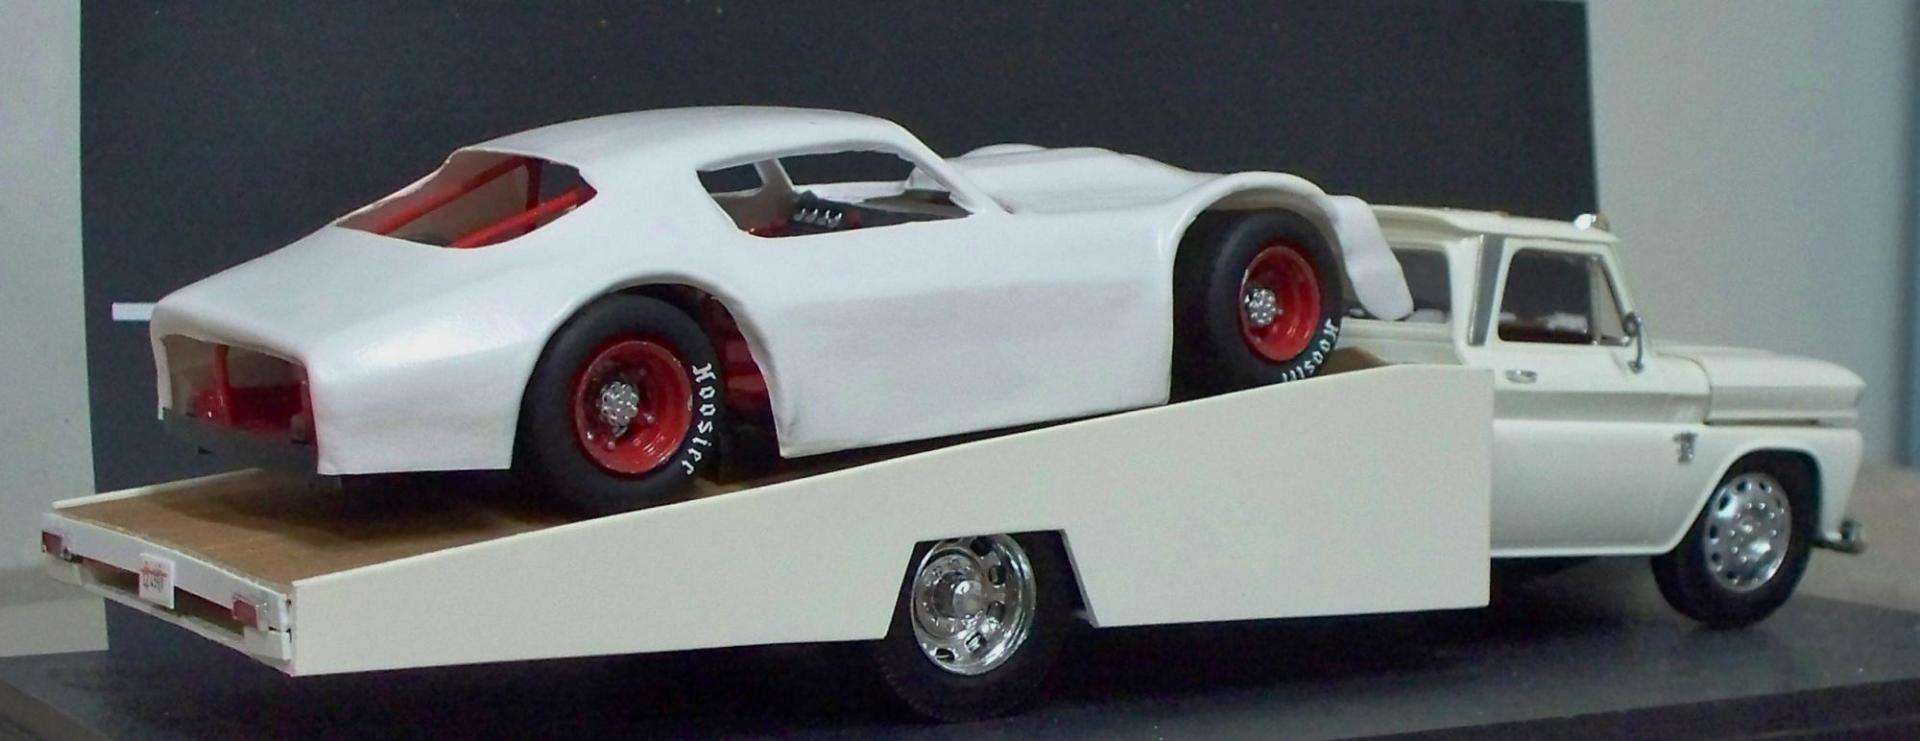 Build Your Own Camaro >> custom decals, printer ideas? - NASCAR - Model Cars ...